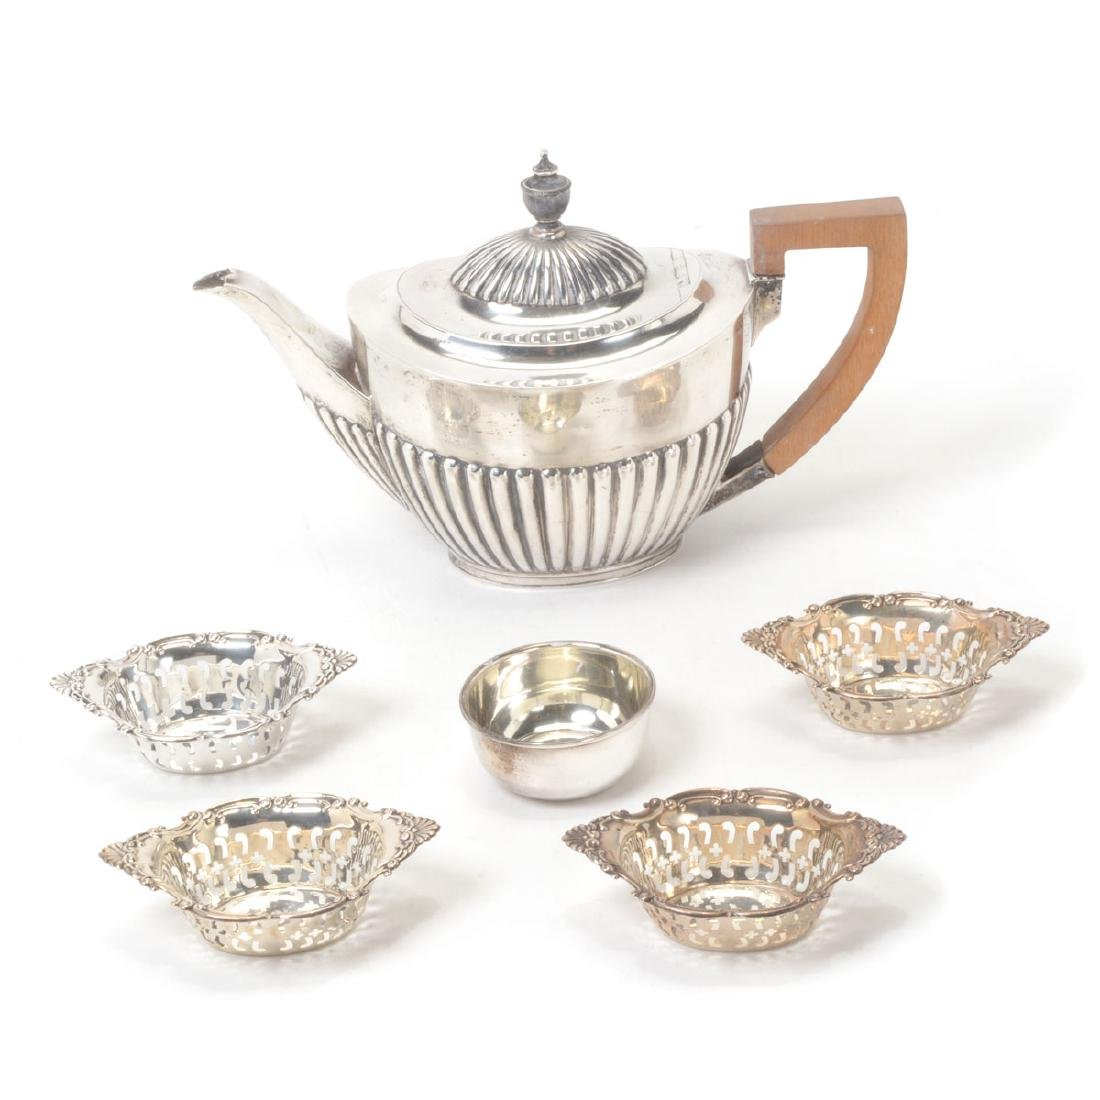 English Sterling Teapot, with Birks Nut Dishes,